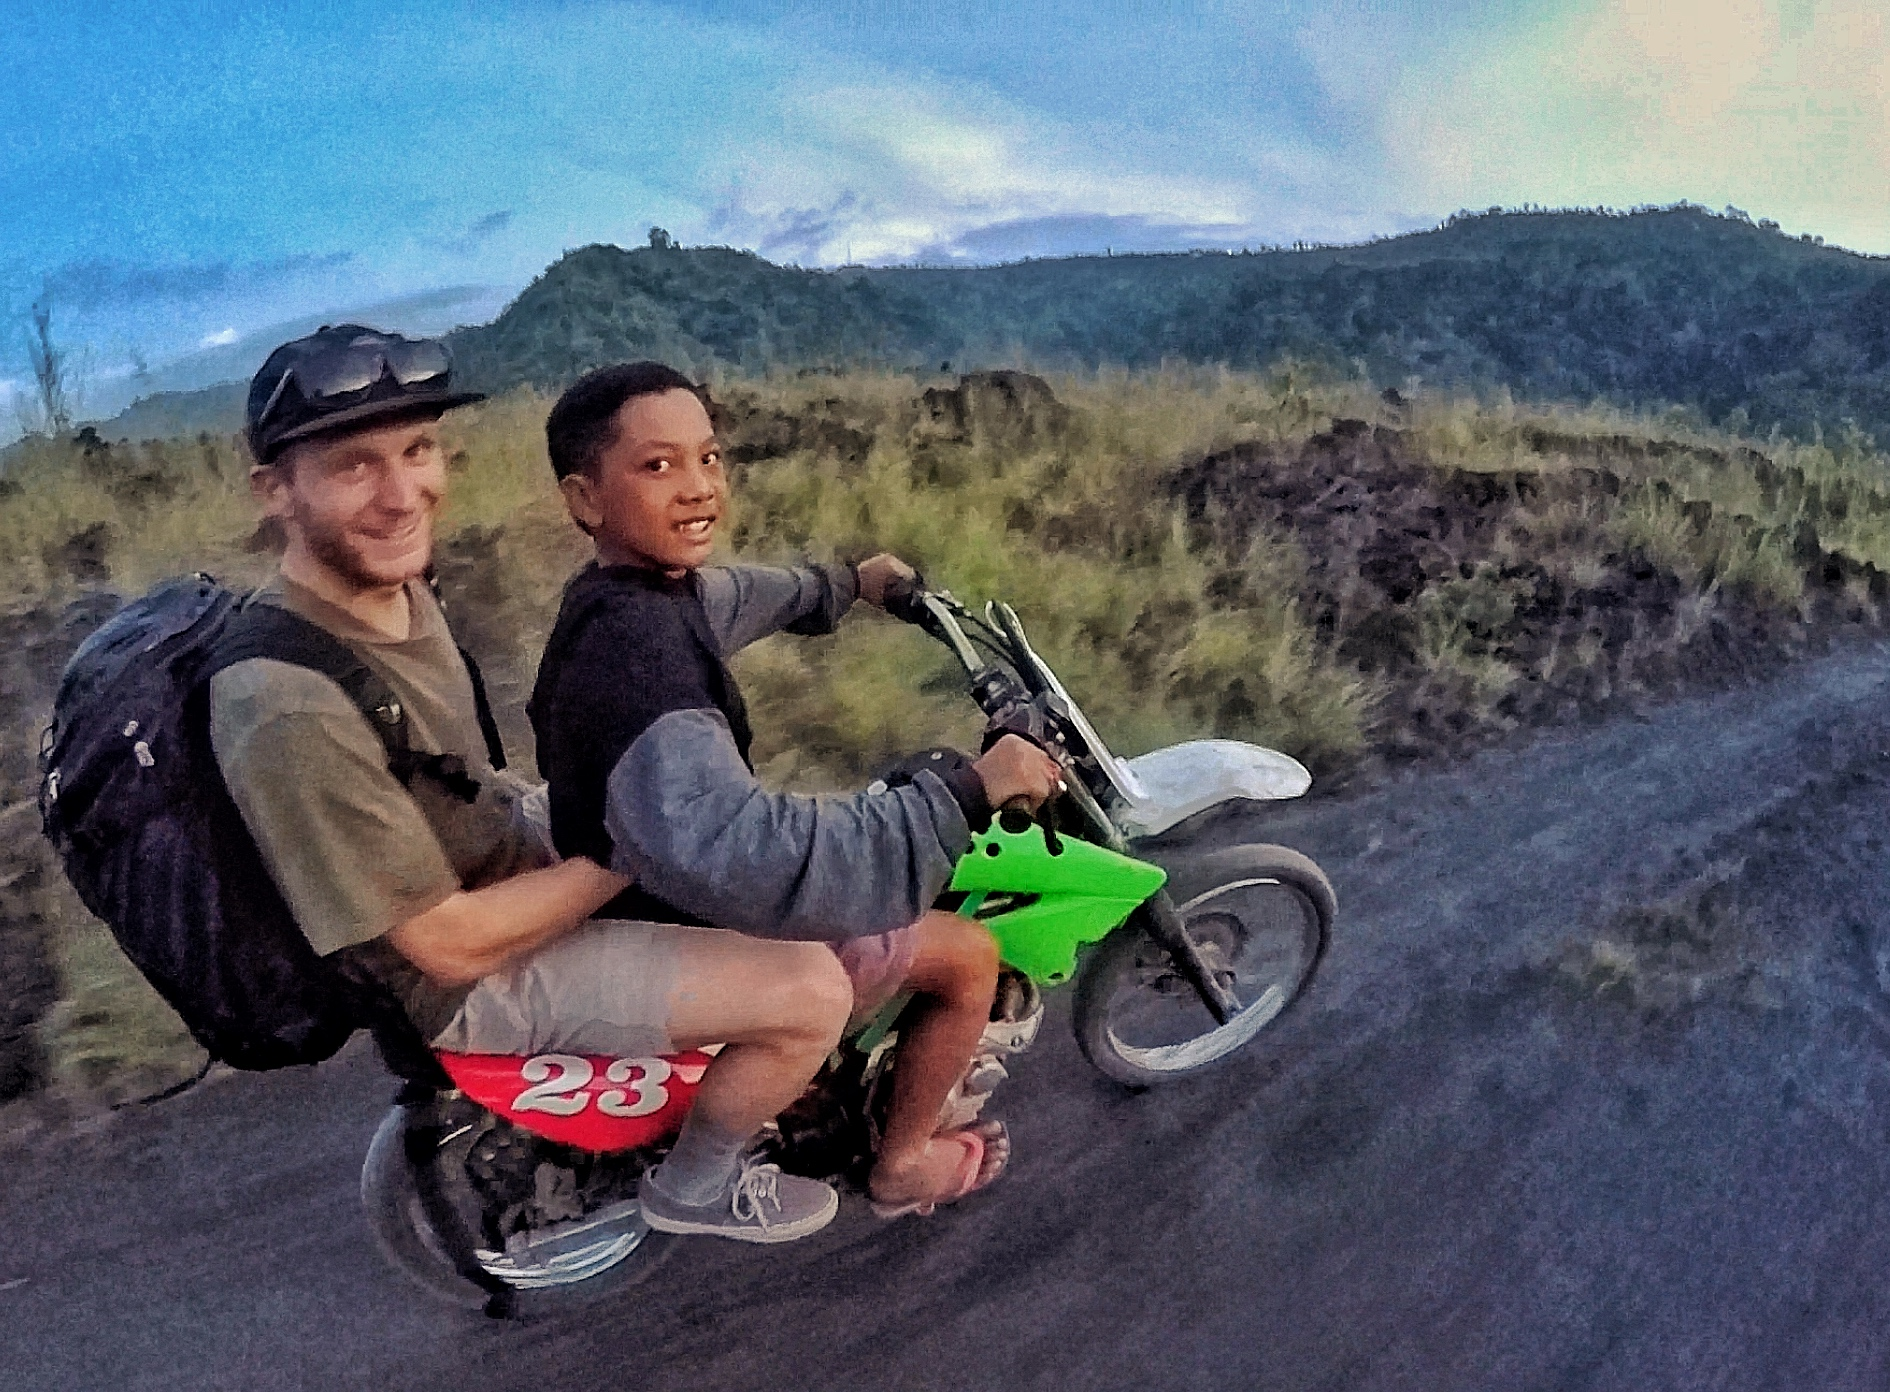 The hike out of the black sands was about 15 minutes on foot. Our camera guys had no transportation, so our curious friends insisted they hop onto the back of their motos.  The boy pictured here is 10 years old, and dreams of becoming a pro motocross racer.